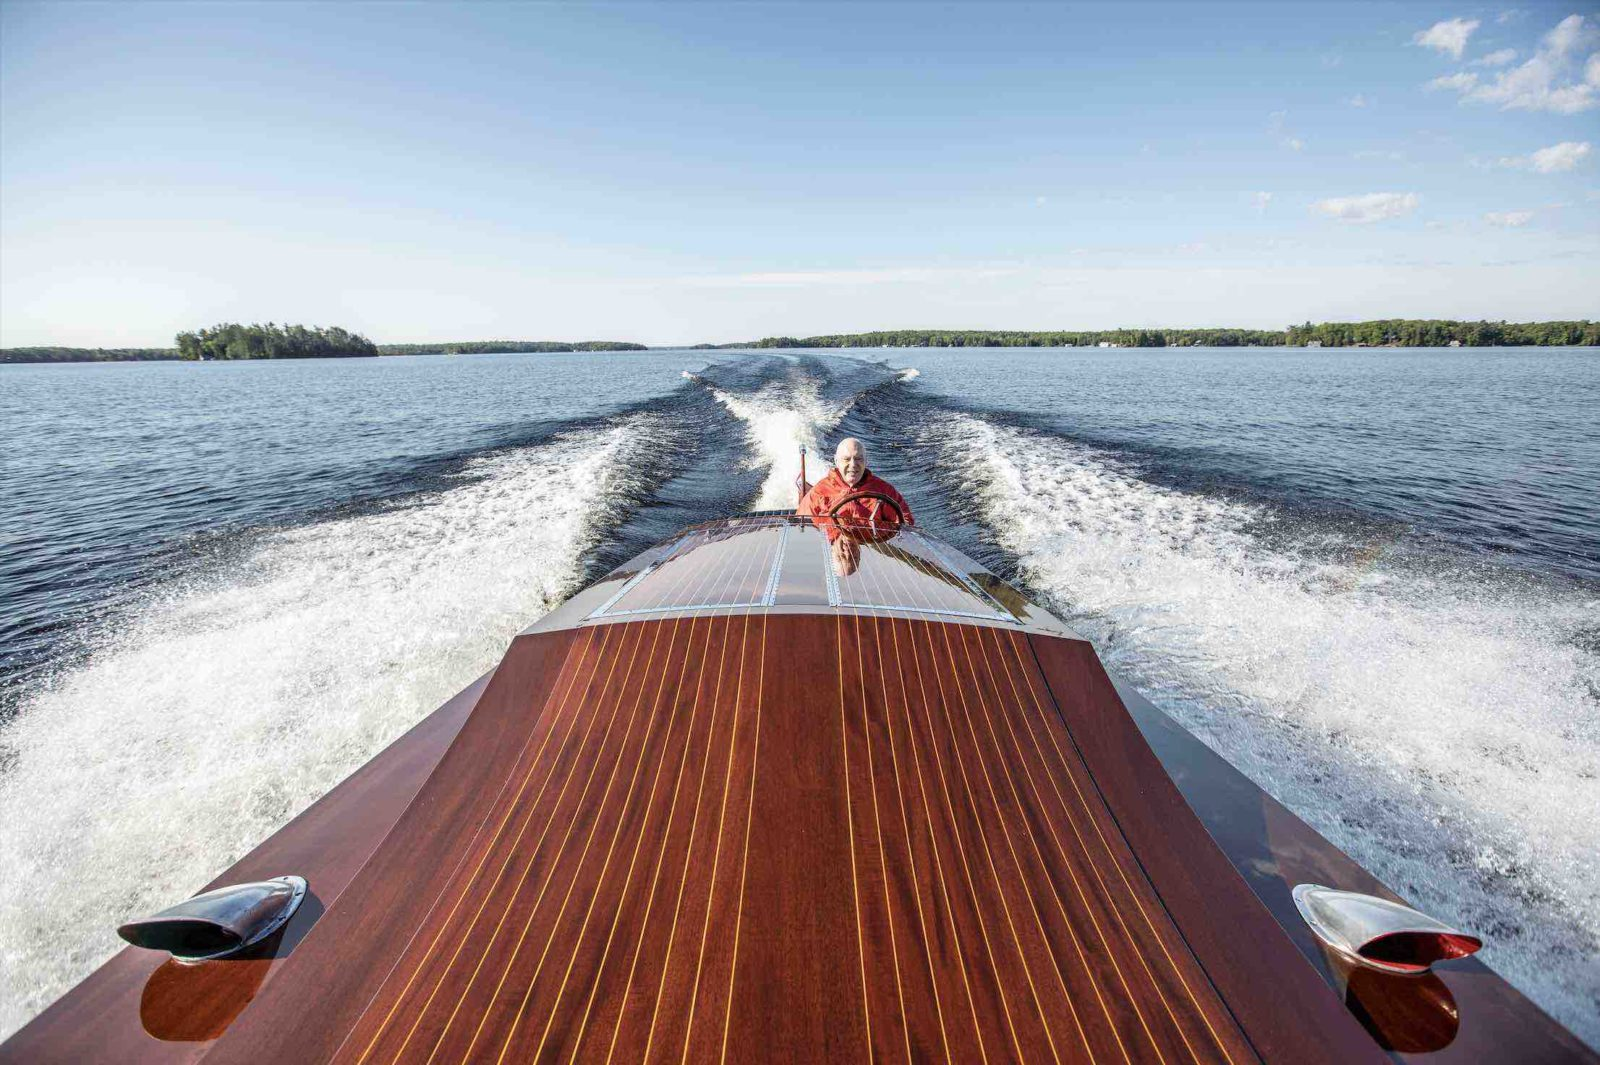 Murray Walker at the Wheel of Classic Boat Miss Supertest III racing across Muskoka Lakes